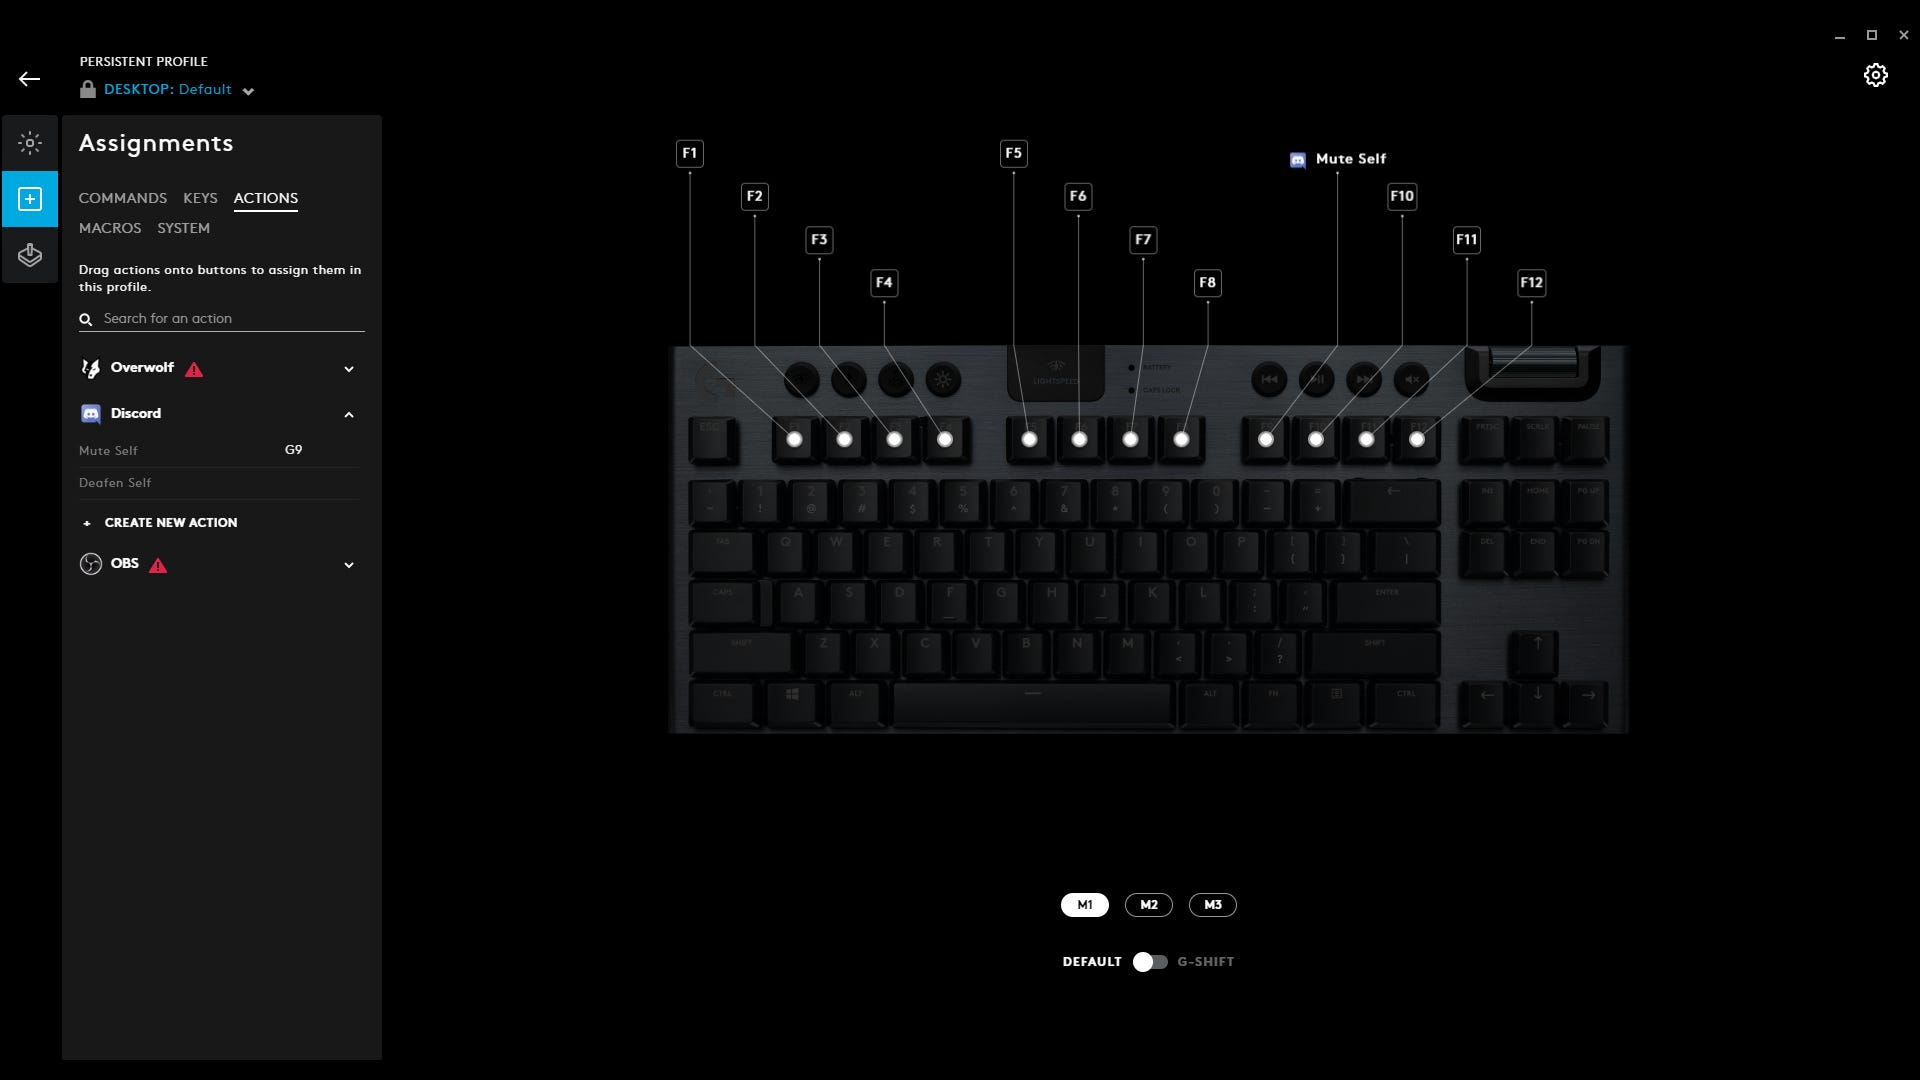 Key reprogramming in Logitech G Hub